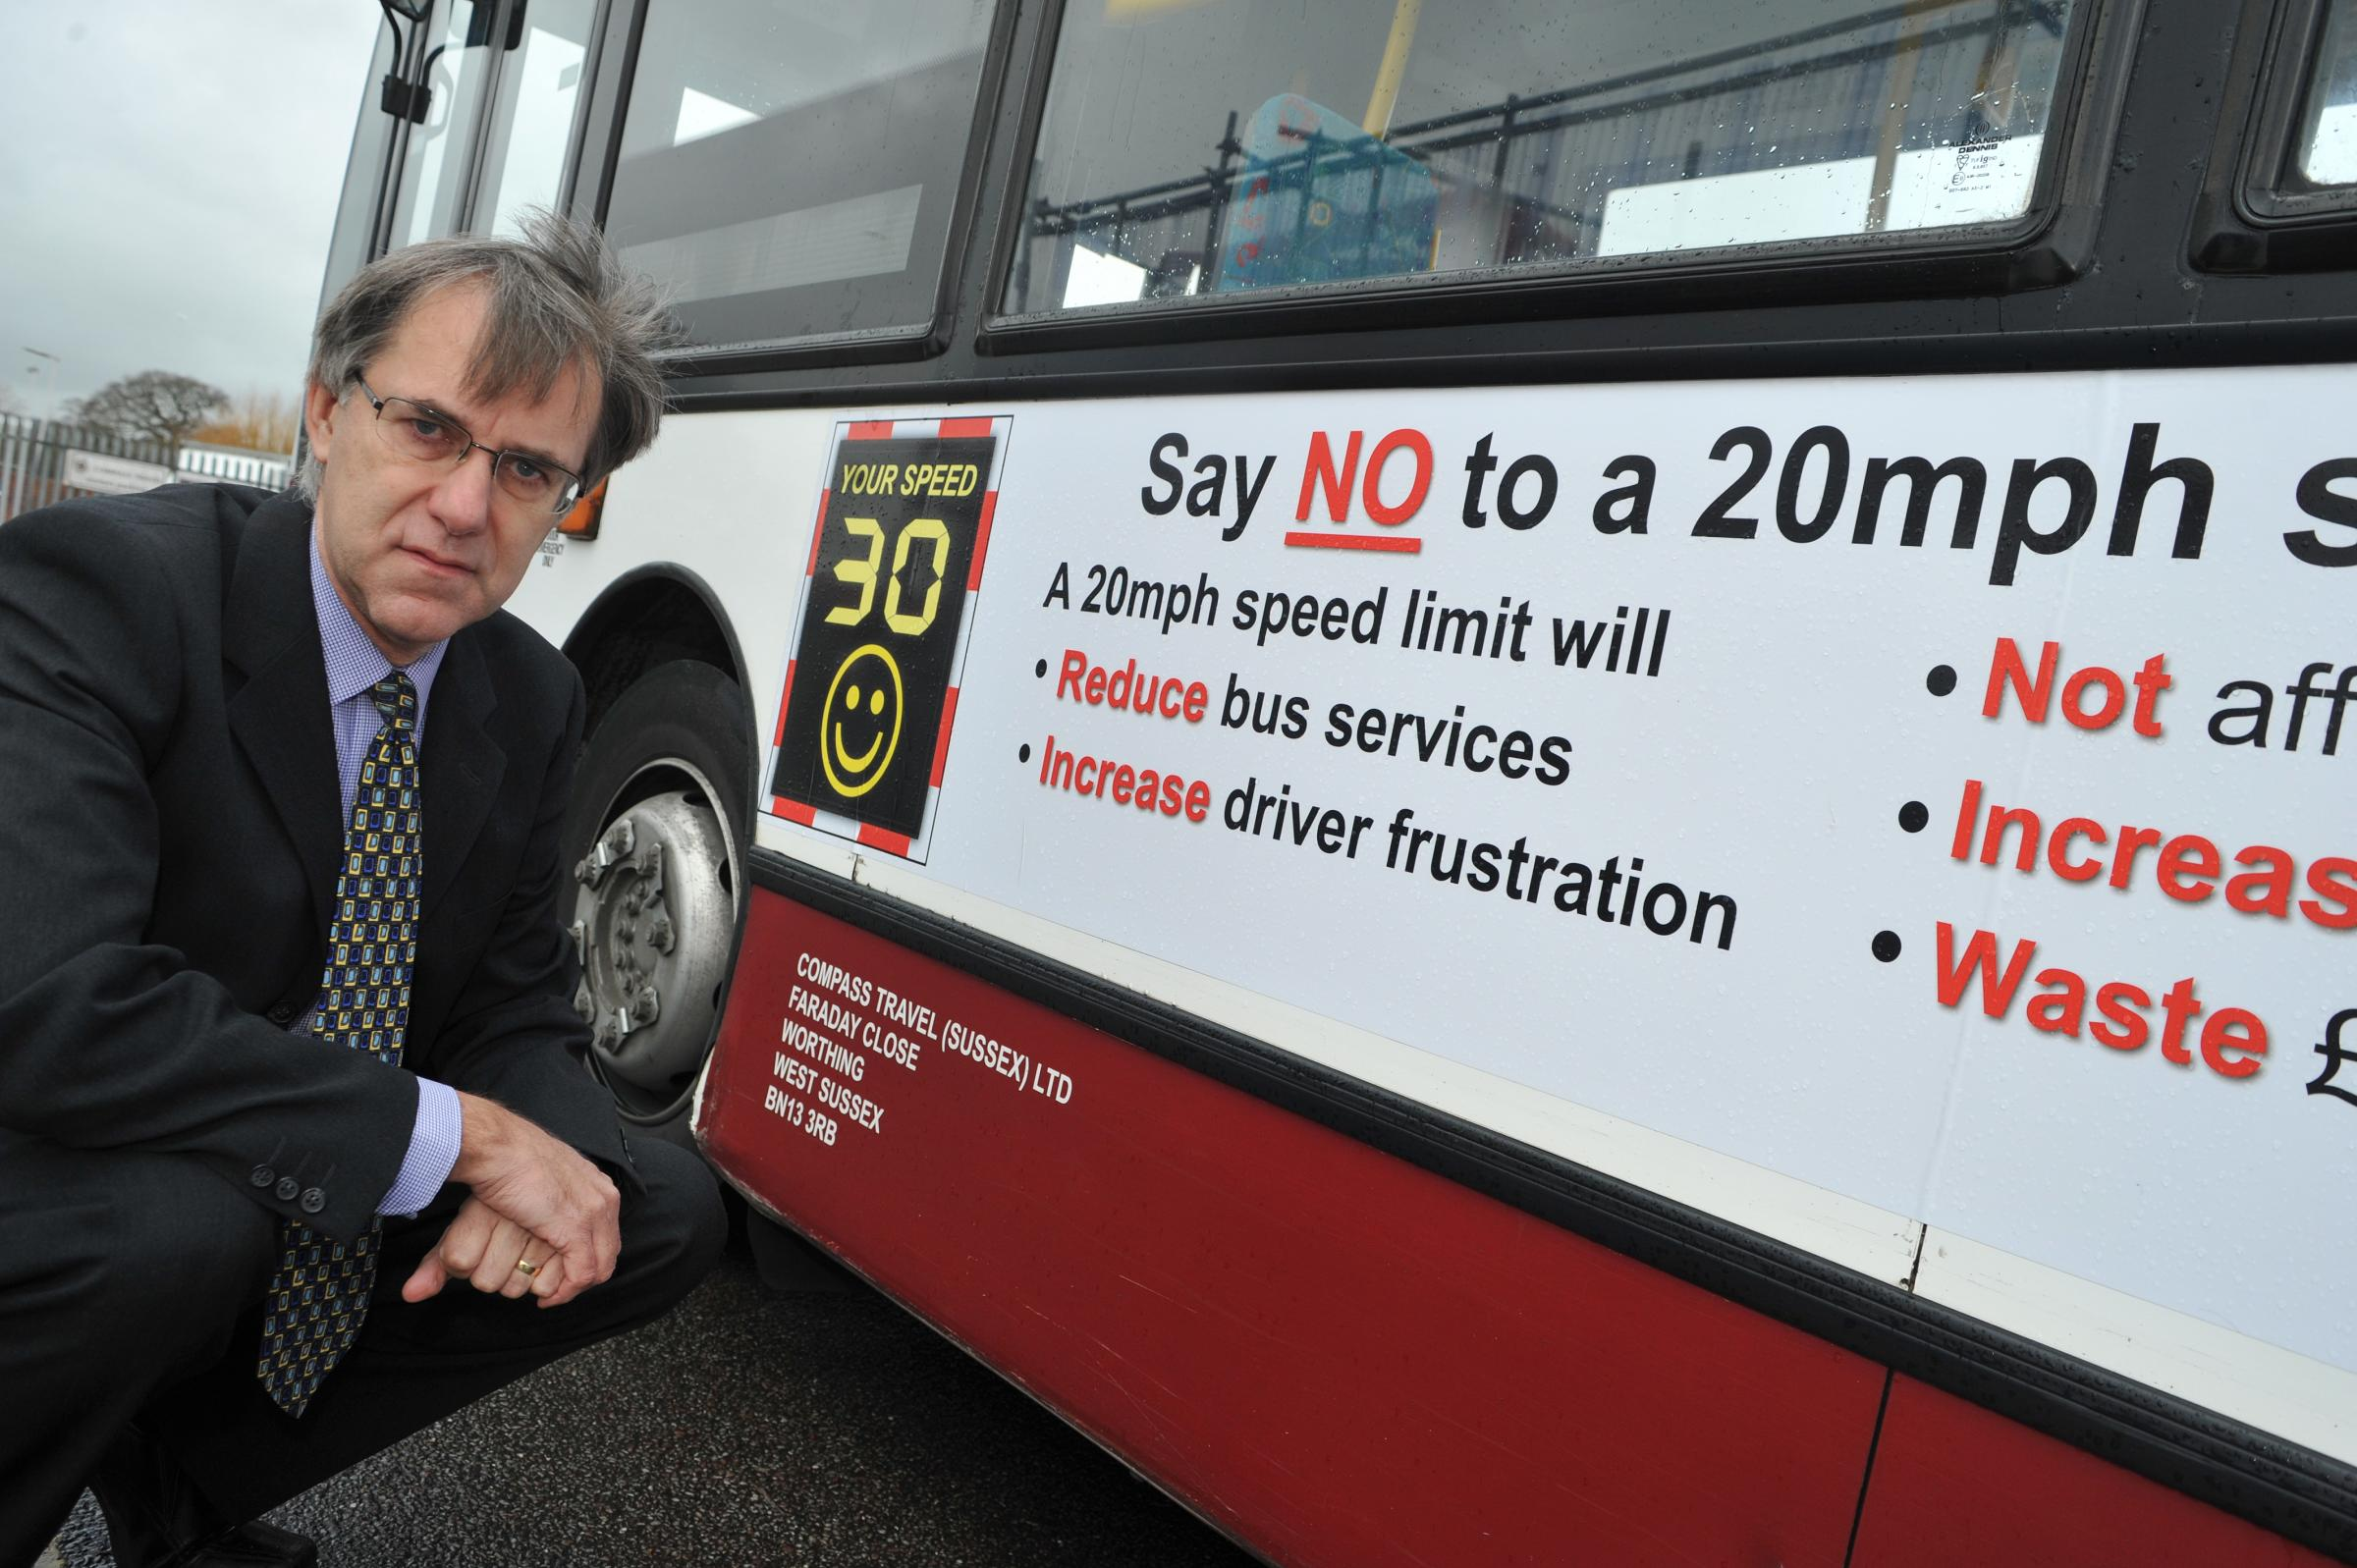 20mph limit could see withdrawal of buses from Worthing